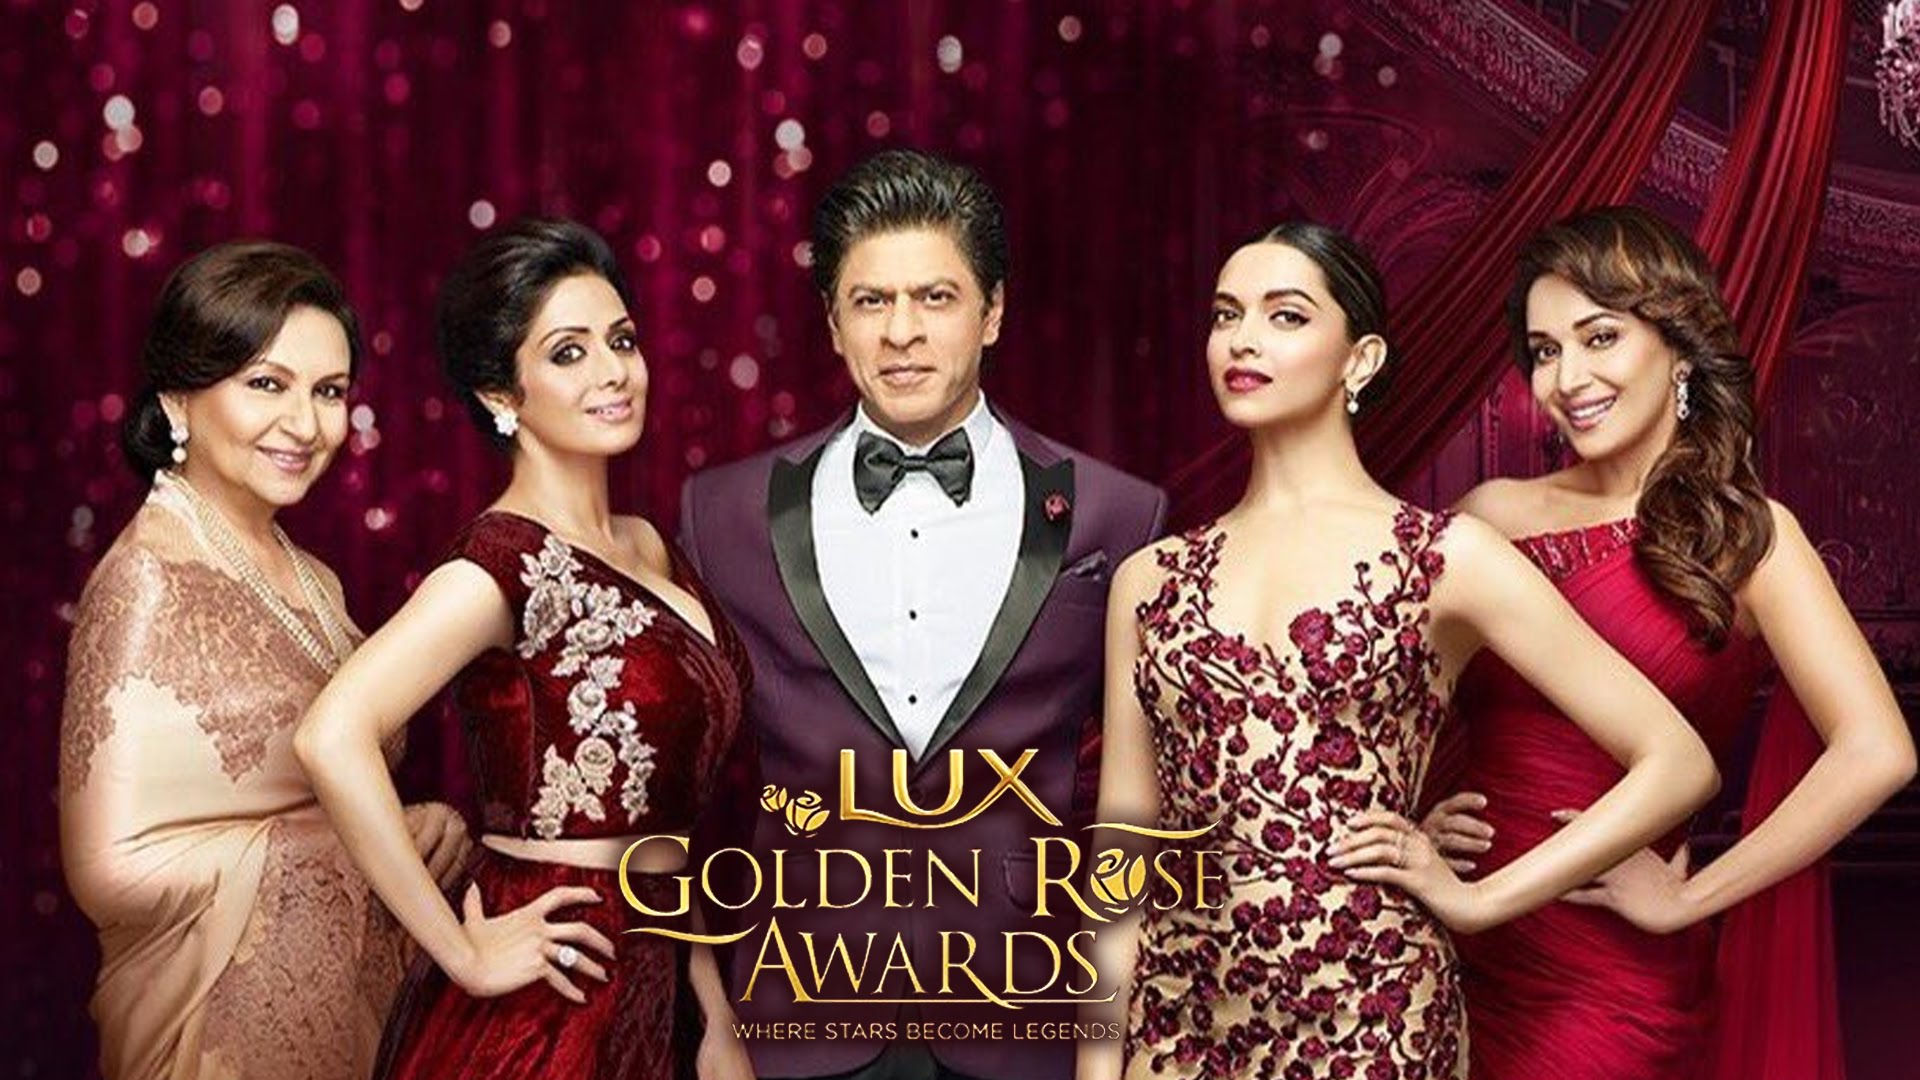 lux golden awards 2016 full details